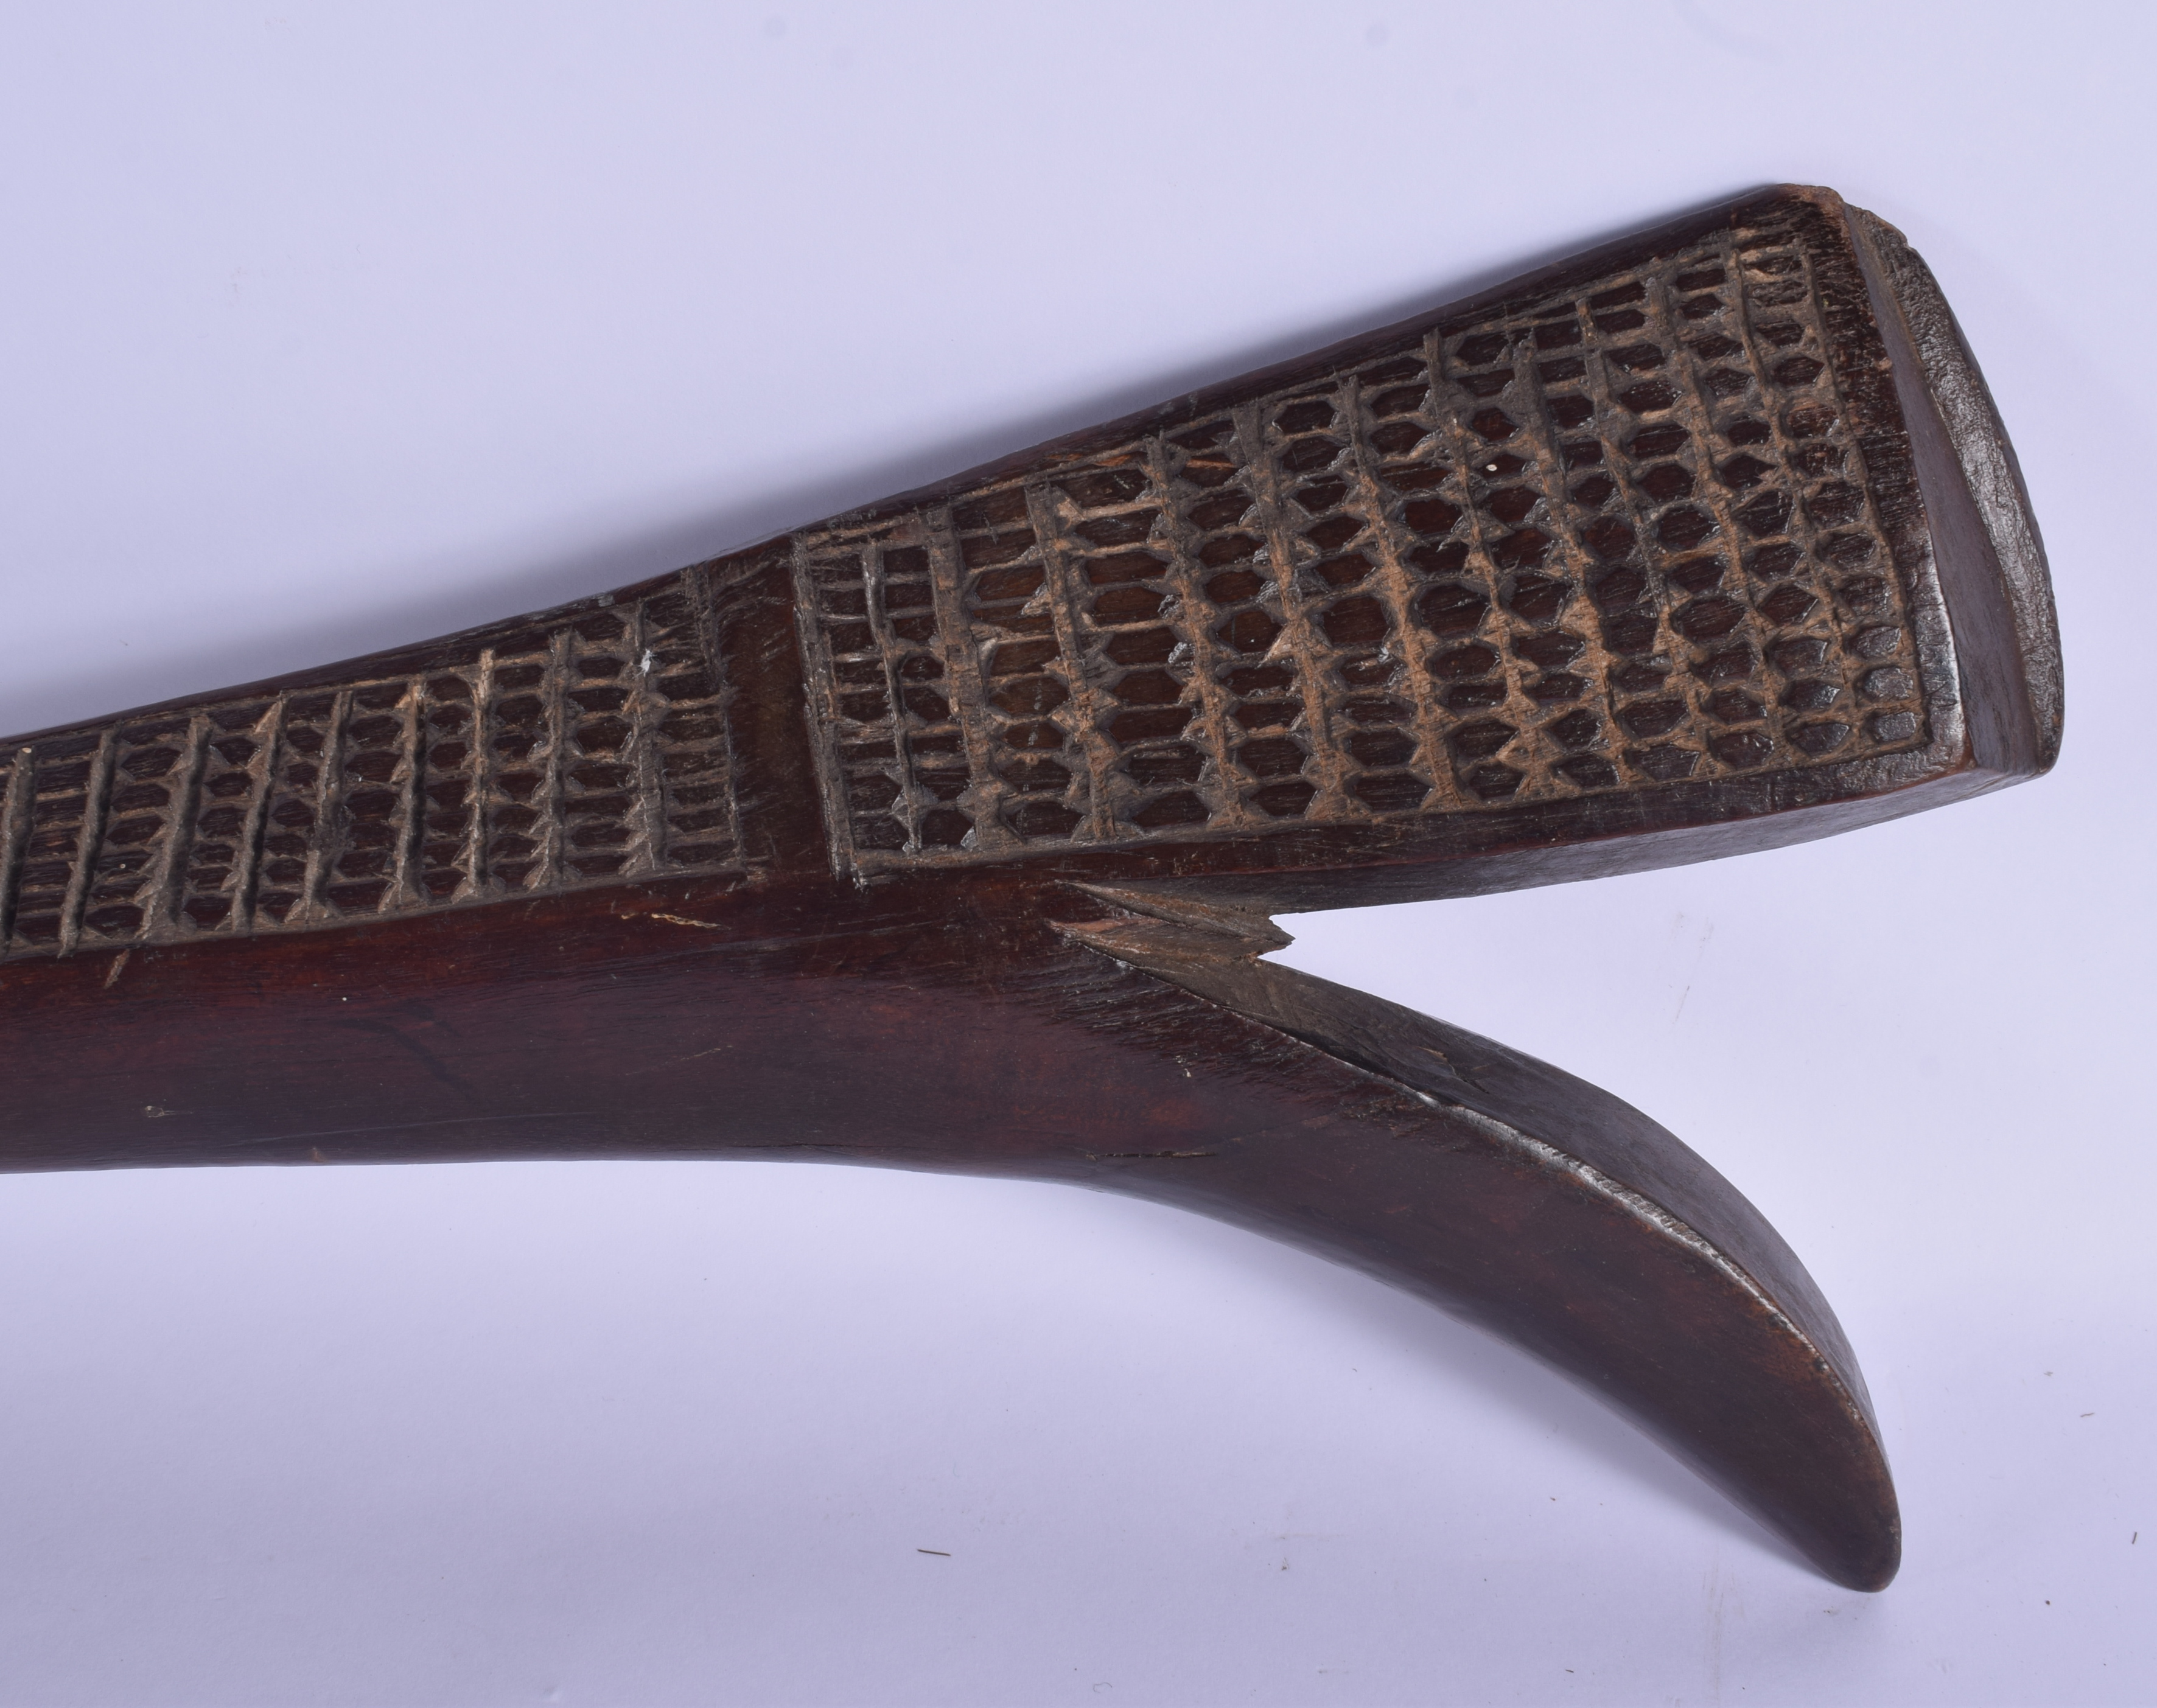 A 19TH CENTURY FIJIAN TRIBAL SALI CLUB decorated with motifs. 99 cm long. - Image 6 of 7